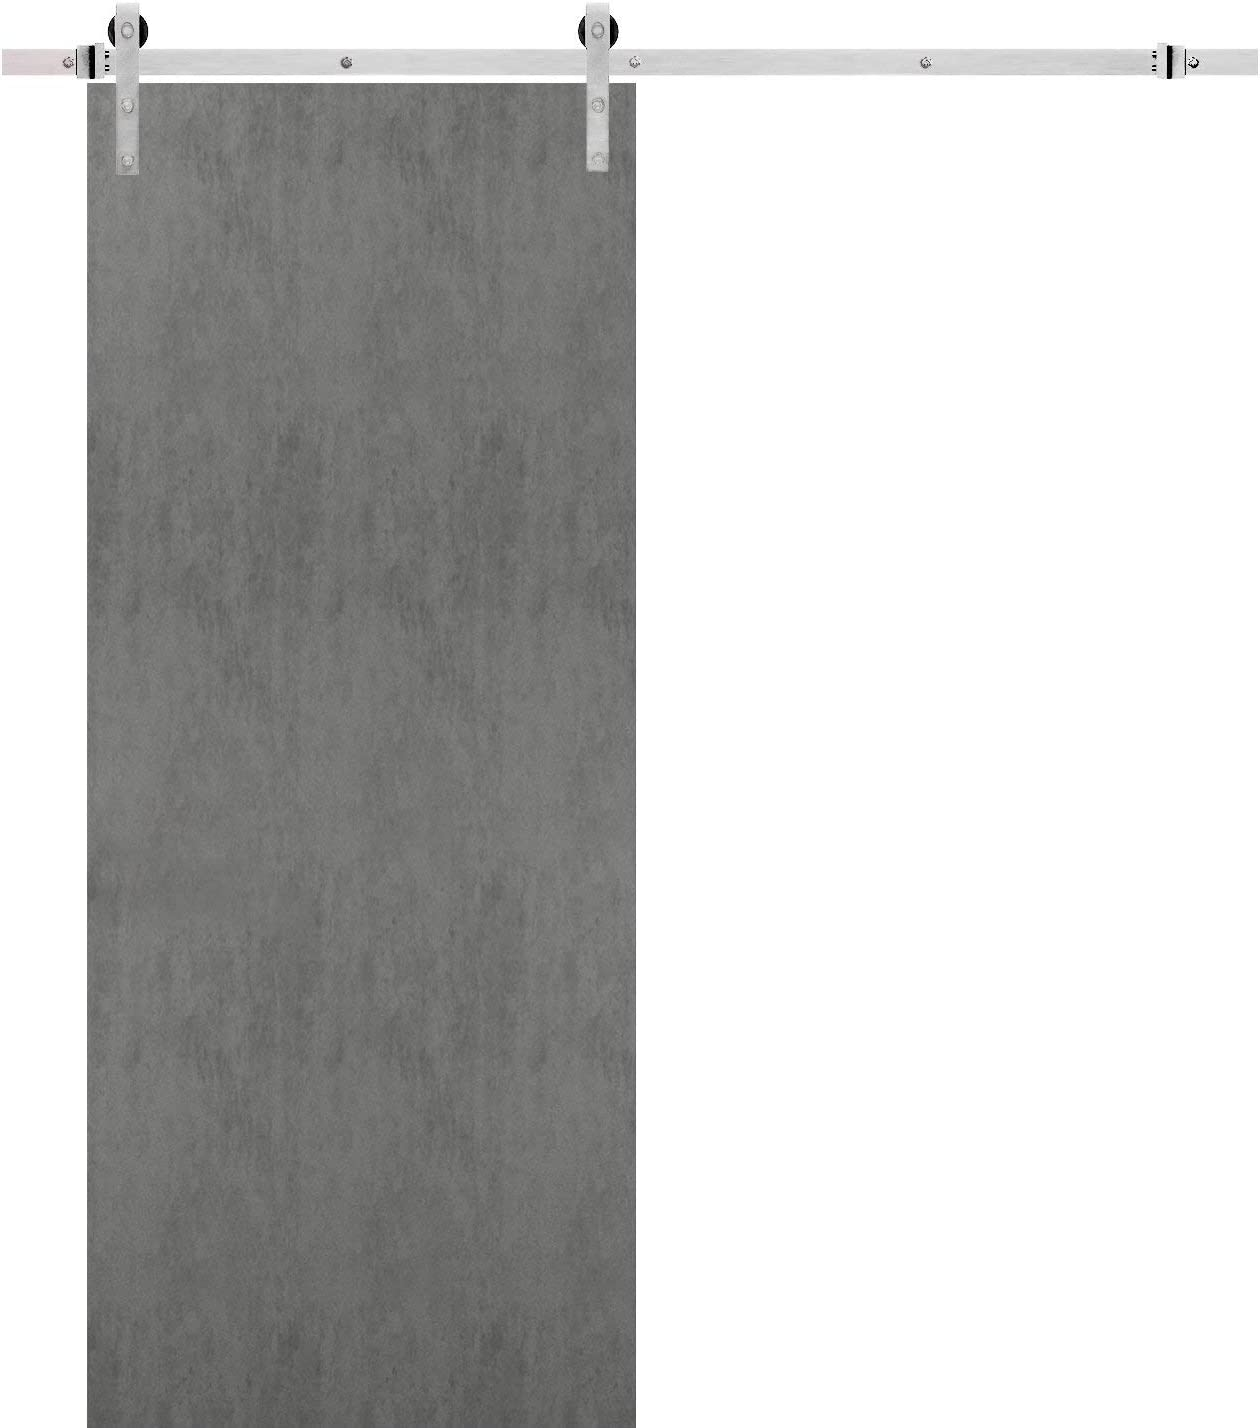 Sturdy Barn Ranking TOP10 Door 18 x 80 Mou Planum Concrete 0010 Top In a popularity inches